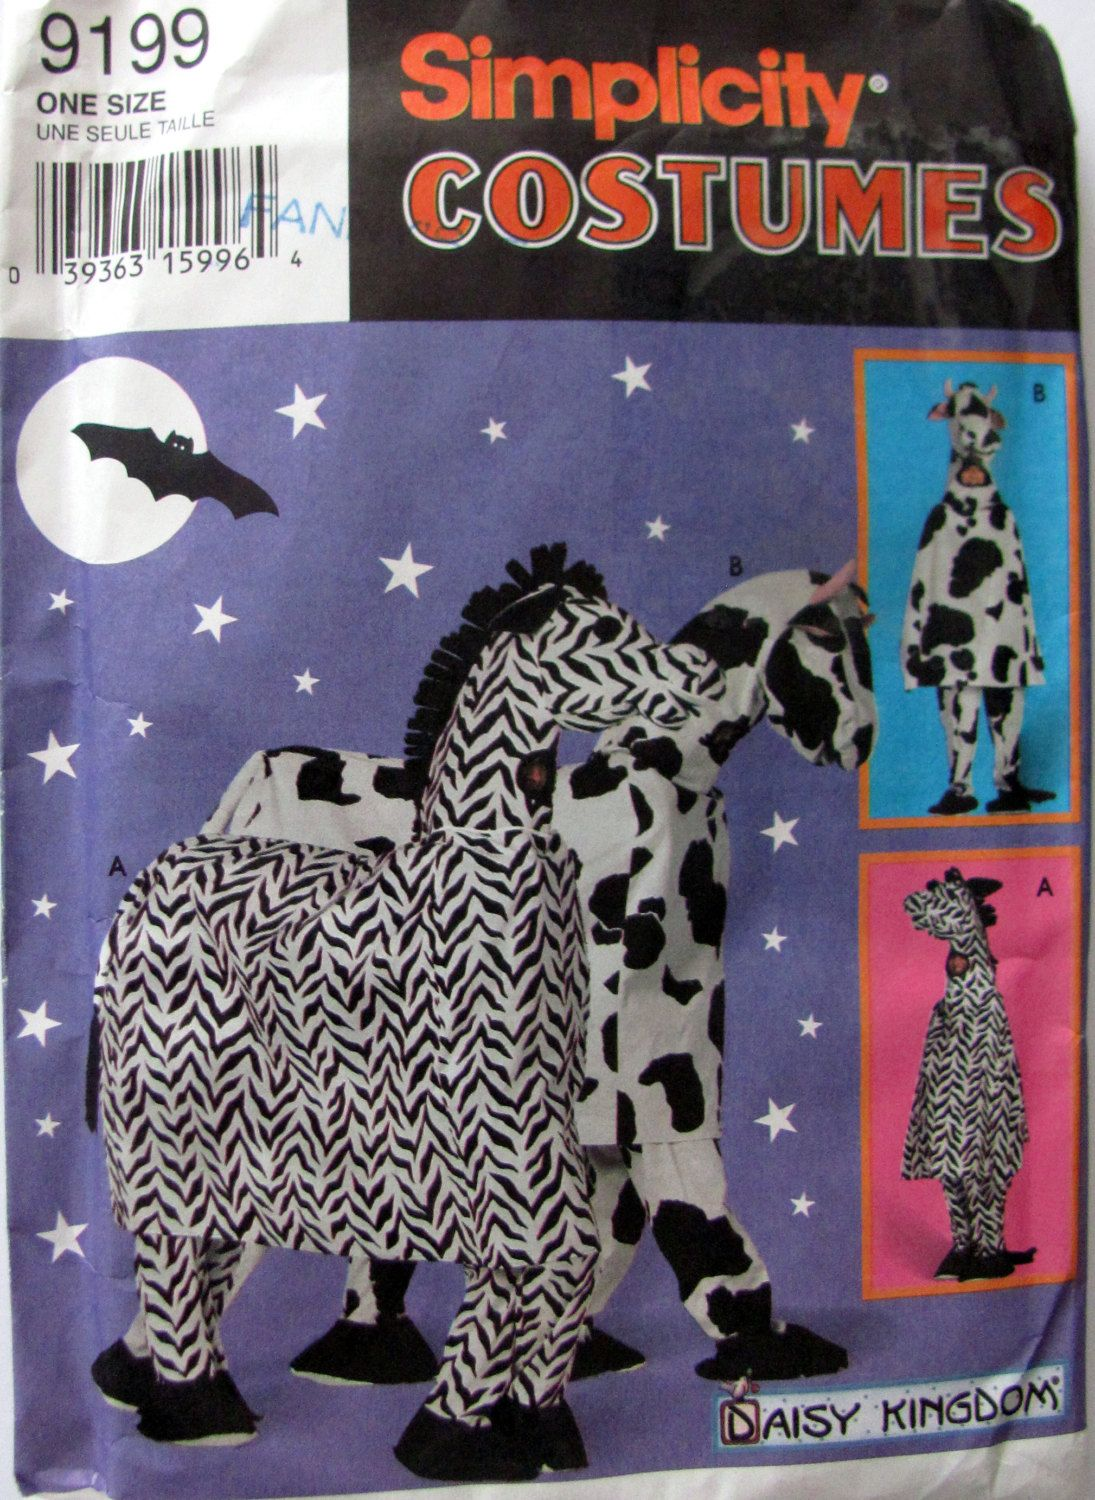 Simplicity 9199 Vintage One or Two Person Zebra and Cow Costume Sewing Pattern Adults Zebra or Cow Costume from 1993 & Simplicity 9199 Vintage One or Two Person Zebra and Cow Costume ...